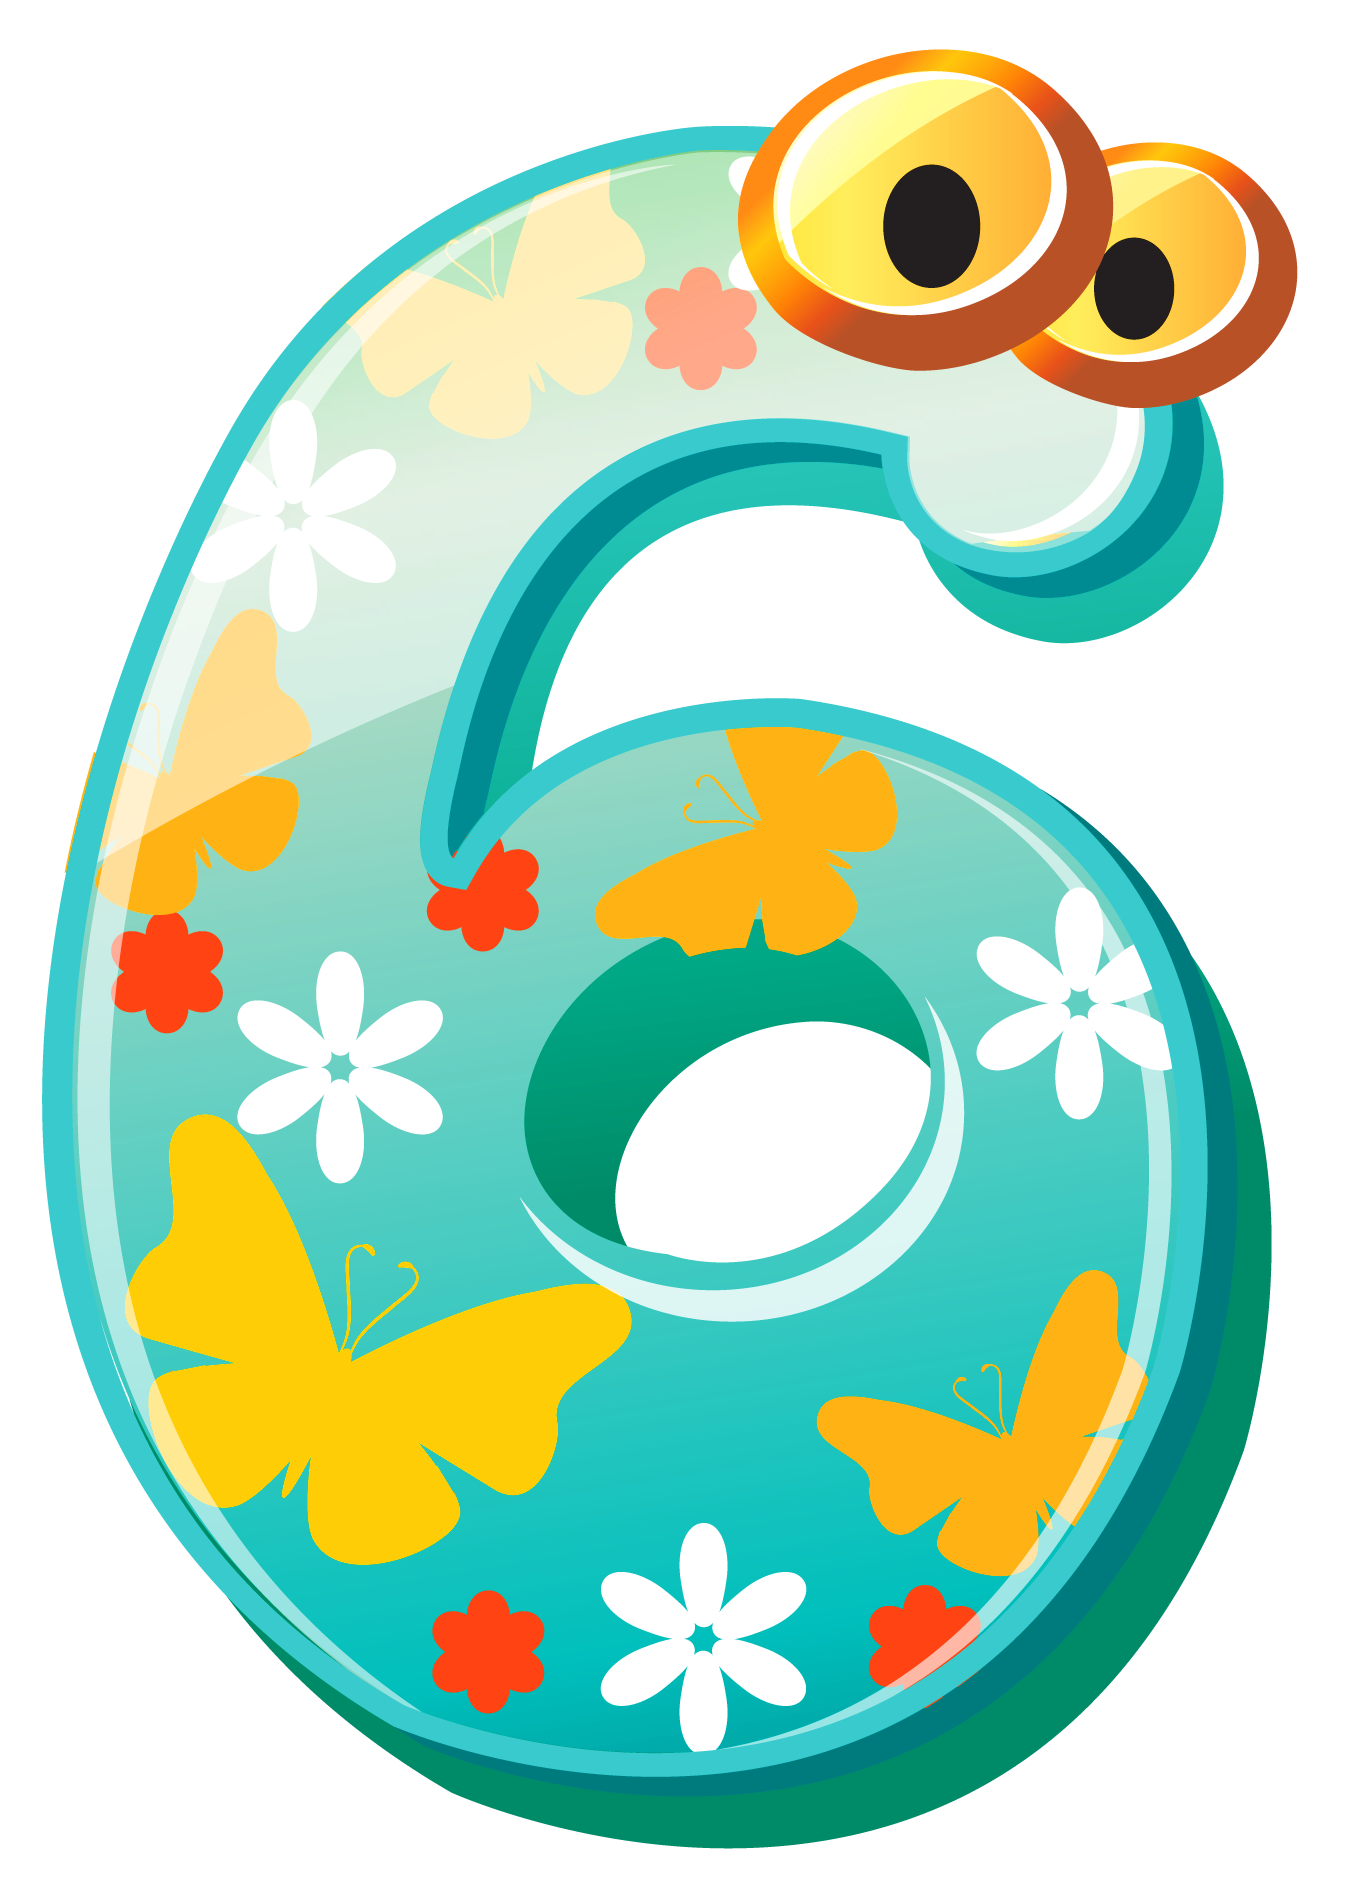 image royalty free download 6 clipart. Cute number six png